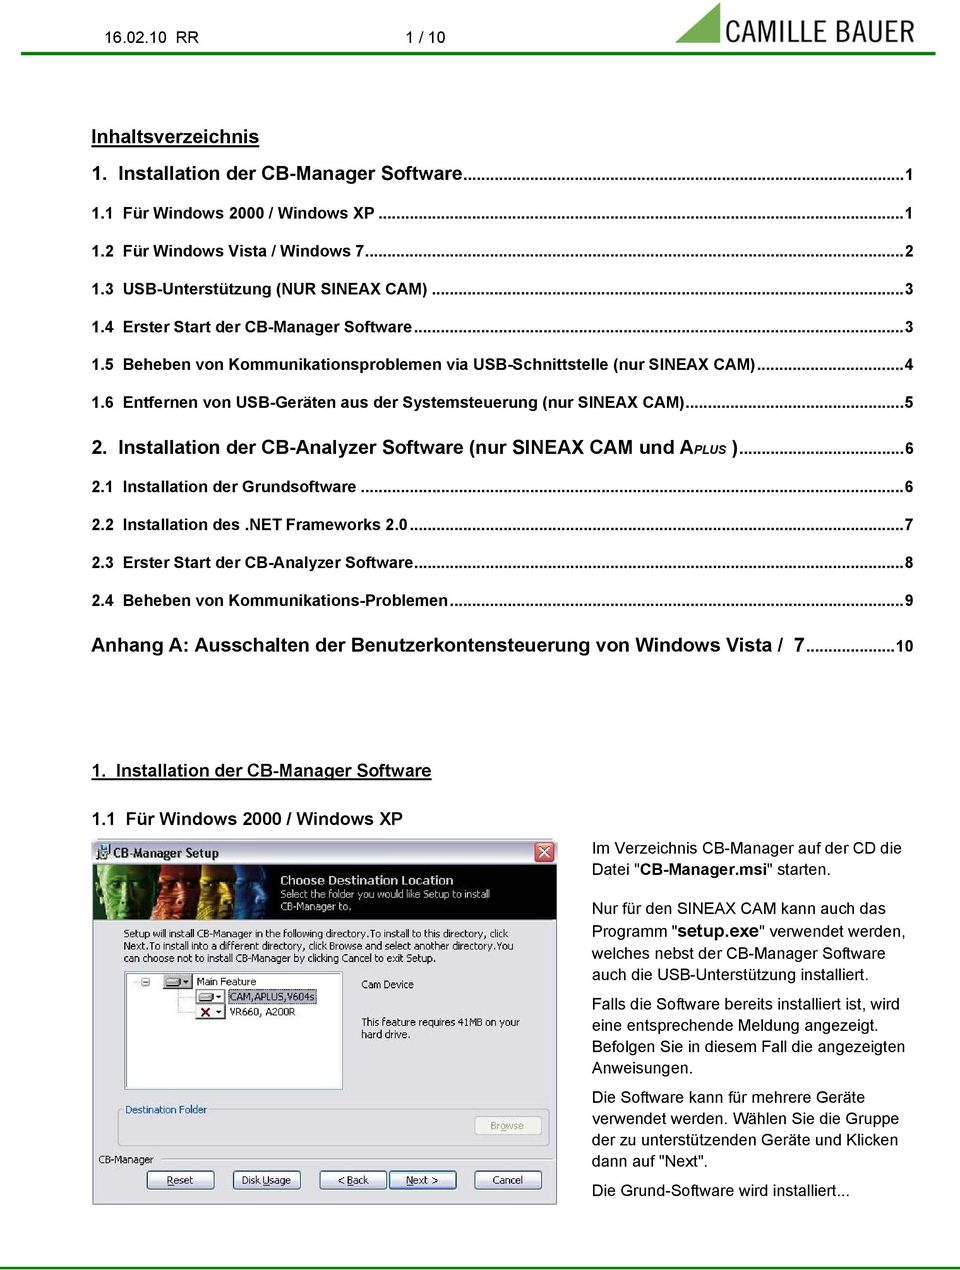 6 Entfernen von USB-Geräten aus der Systemsteuerung (nur SINEAX CAM)...5 2. Installation der CB-Analyzer Software (nur SINEAX CAM und APLUS )...6 2.1 Installation der Grundsoftware...6 2.2 Installation des.